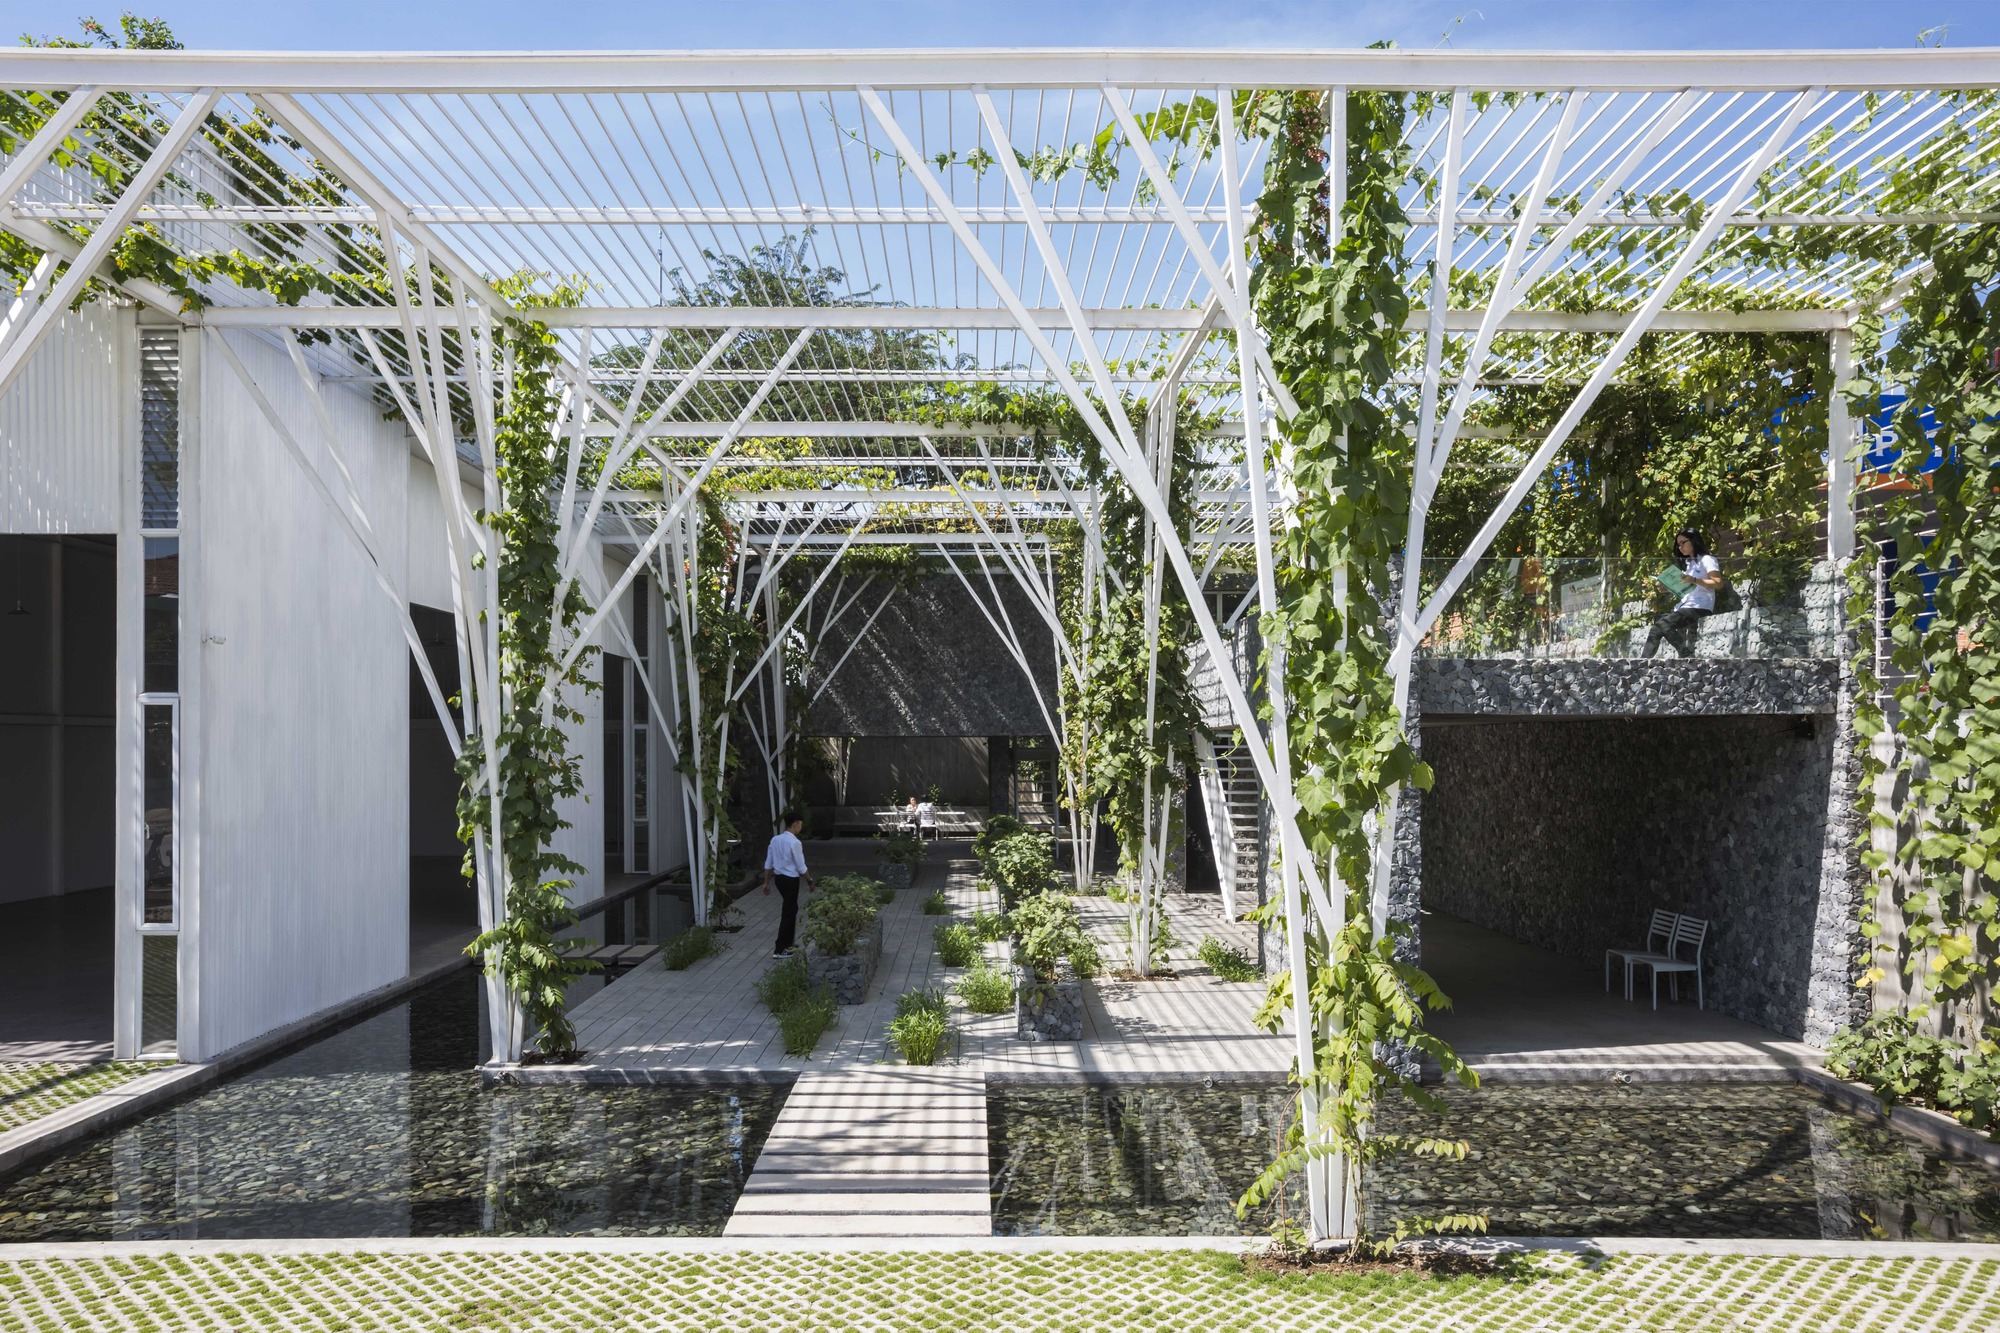 Vegetable trellis cong sinh architects archdaily for Architecture si